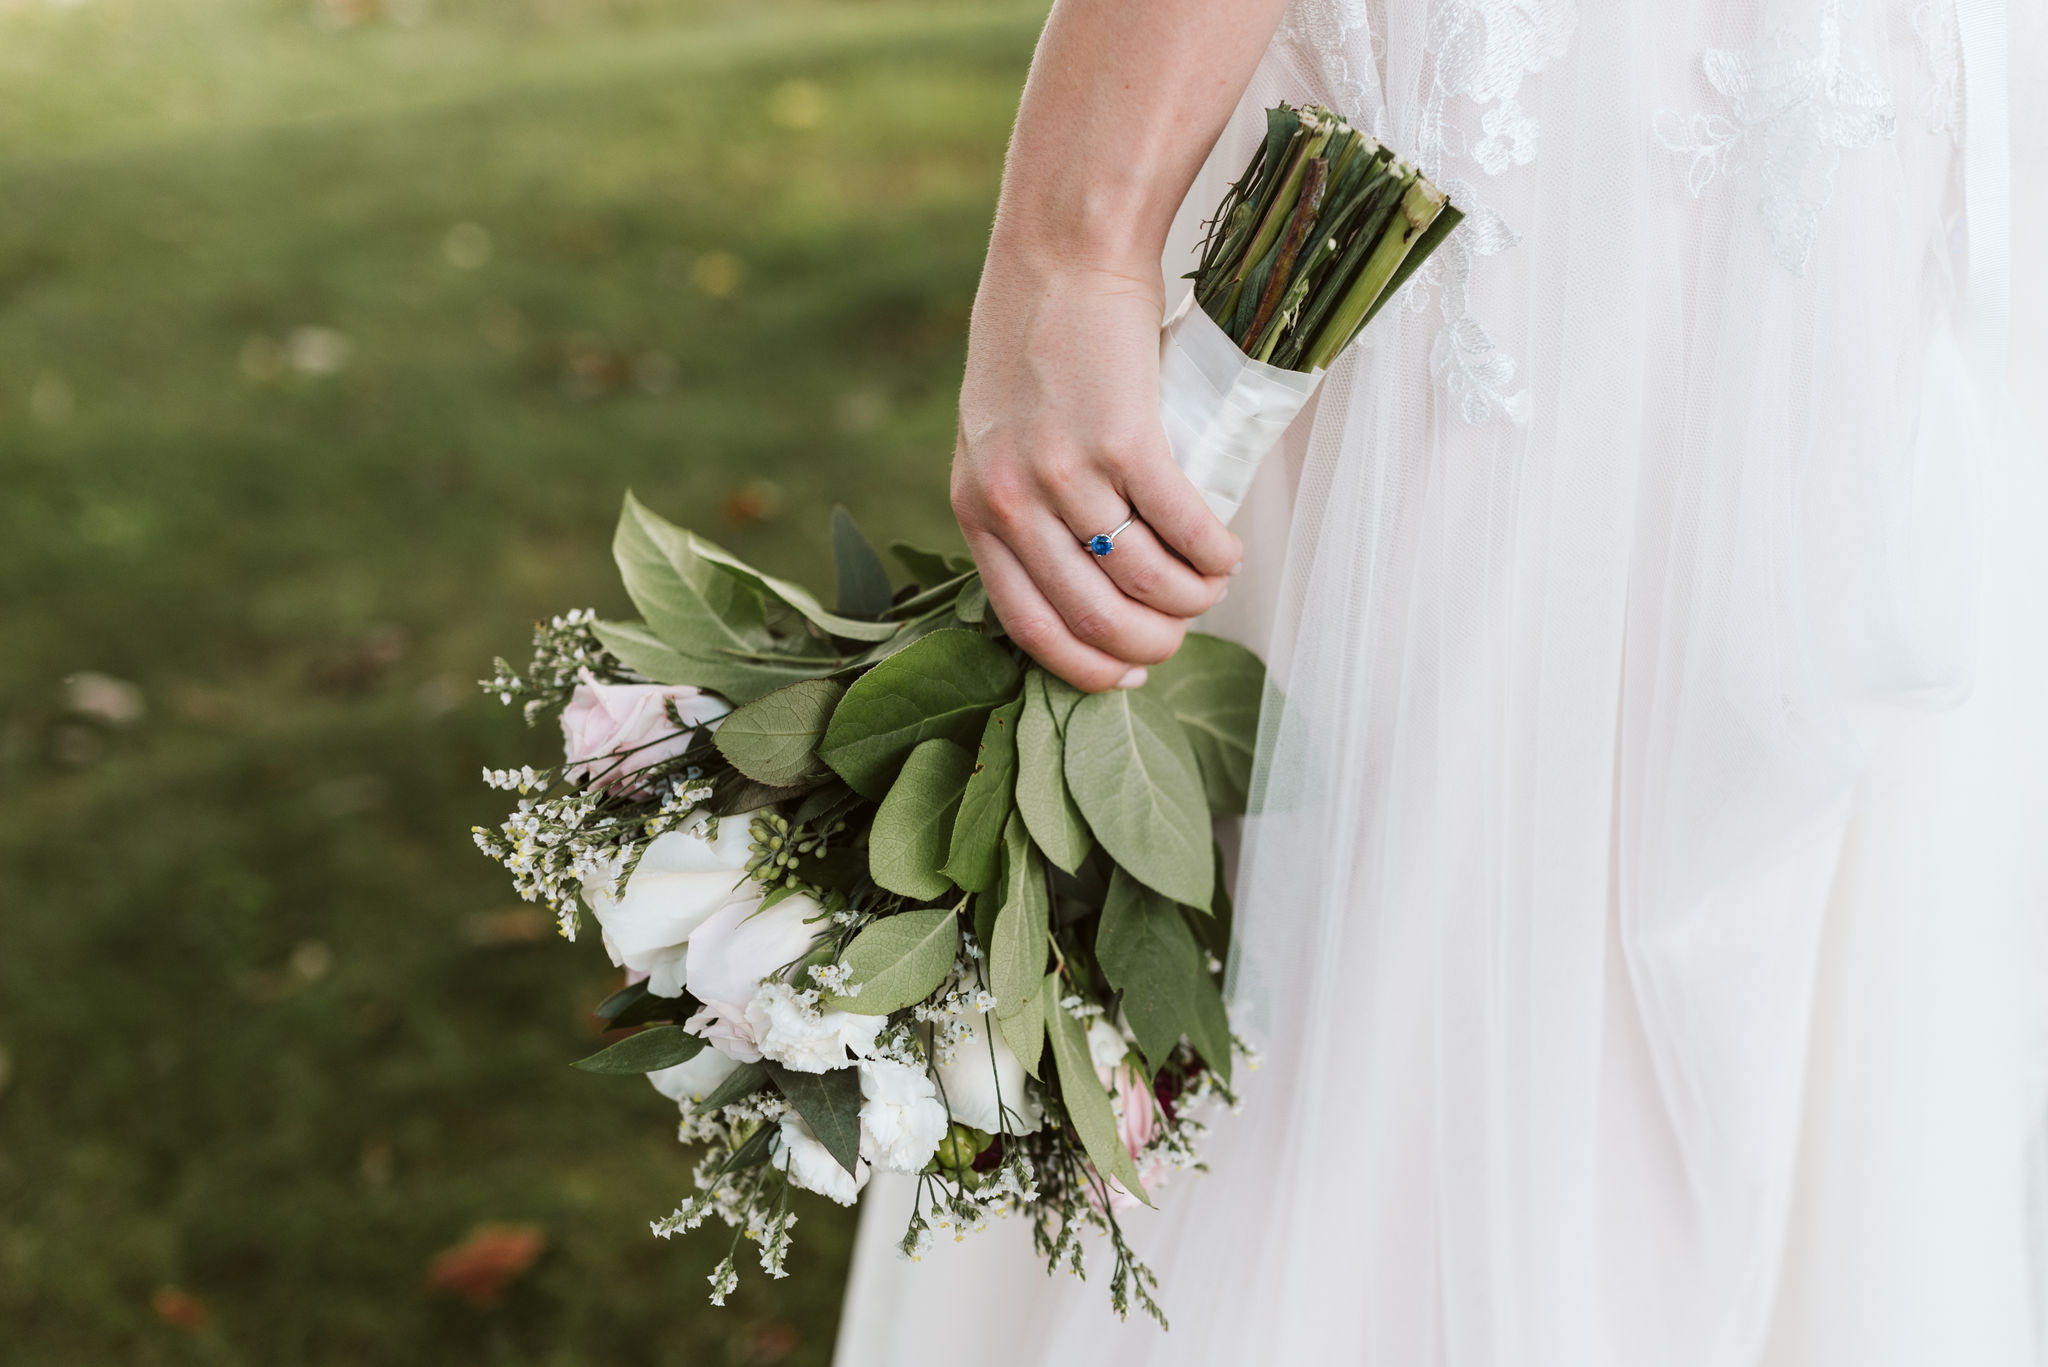 Phoenix Maryland, Baltimore Wedding Photographer, Eagle's Nest Country Club, Classic, Romantic, Spring, Detail Photo of Bride with Brilliant Earth Engagement Ring Holding Flowers